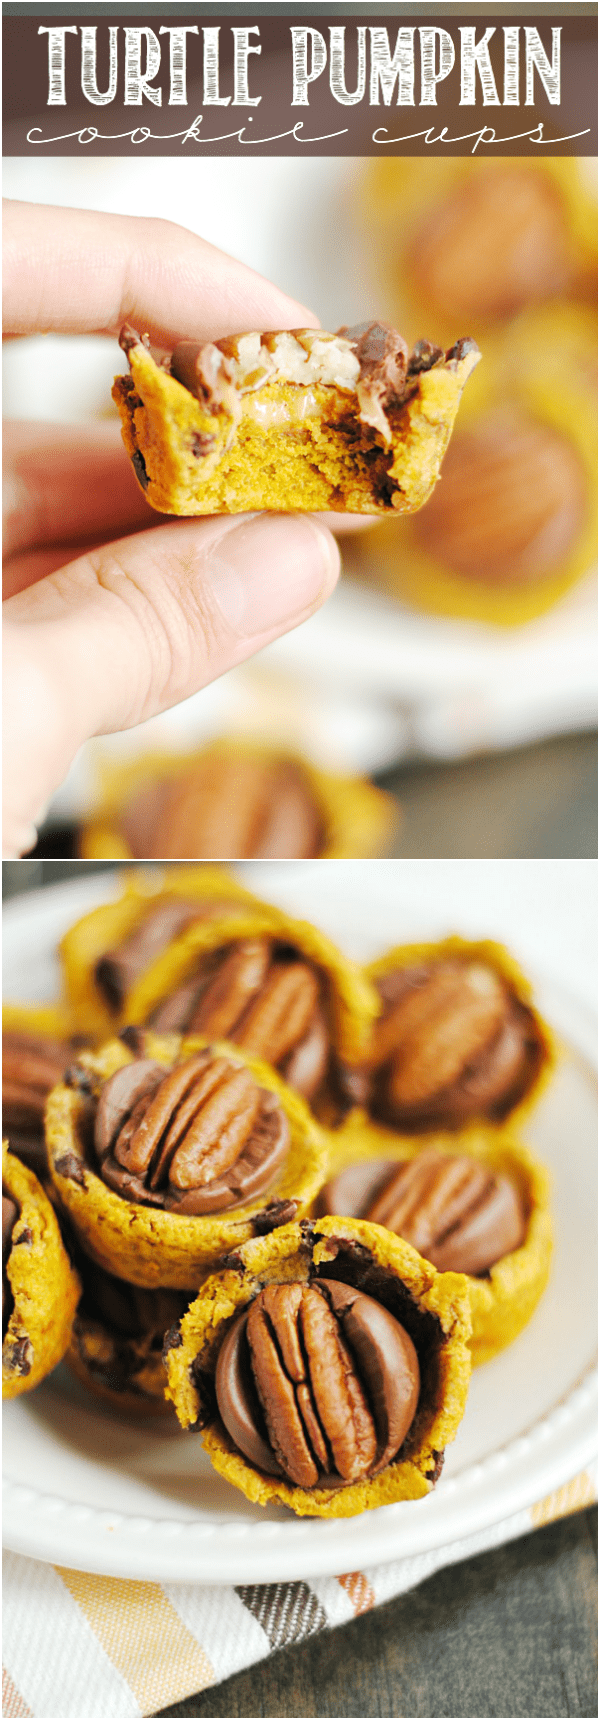 Turtle Pumpkin Cookie Cups